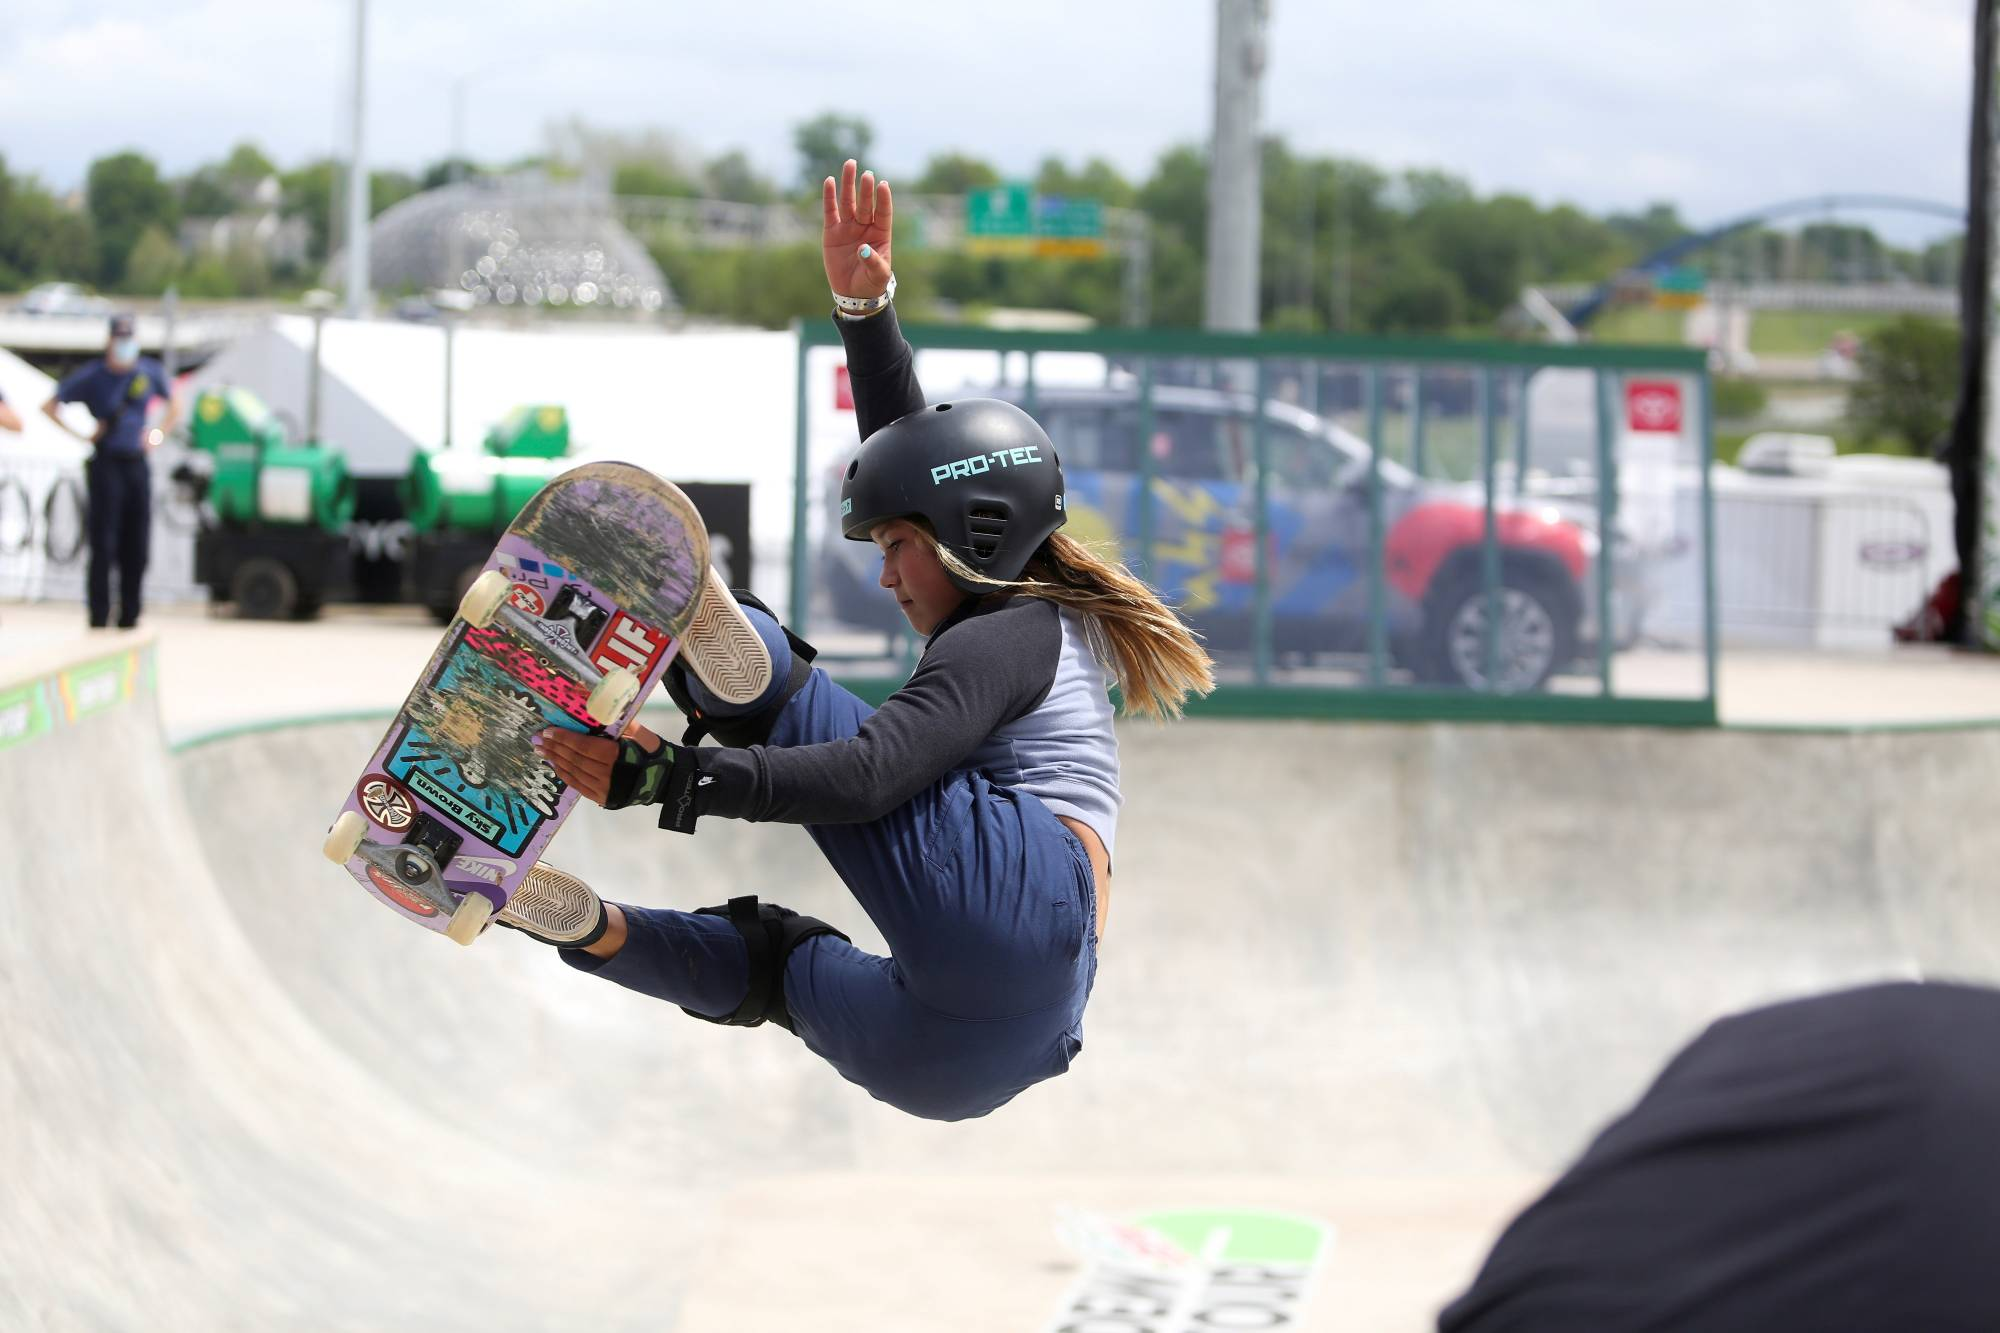 Sky Brown will set the record as Team GB's youngest Olympian at age 13 when she competes at the Tokyo Games.   REUTERS